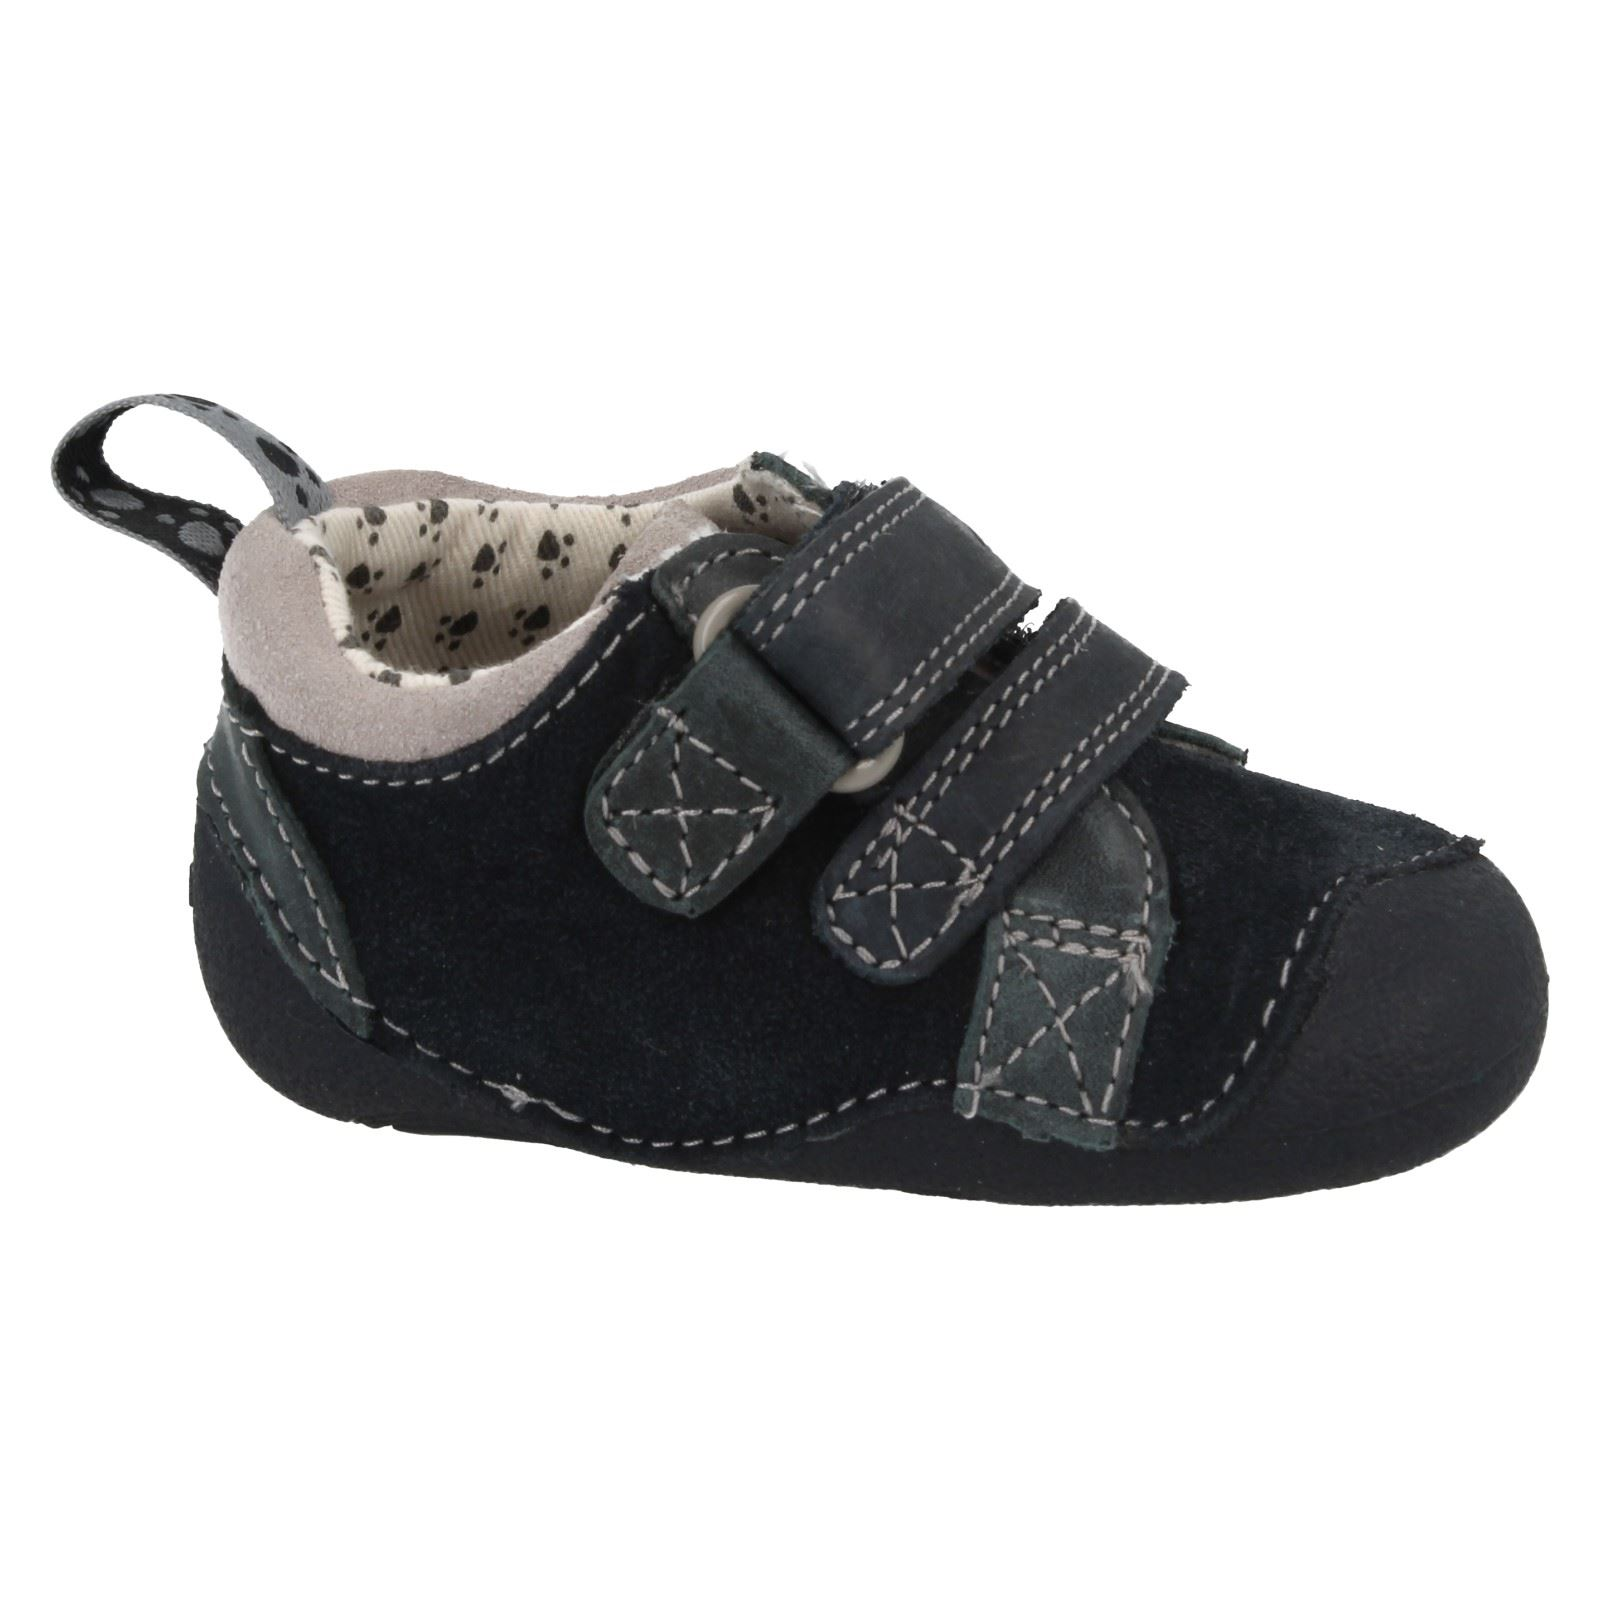 Blue Cruiser Clarks Shoes Chicos Casual Tiny Paw q8HxCY